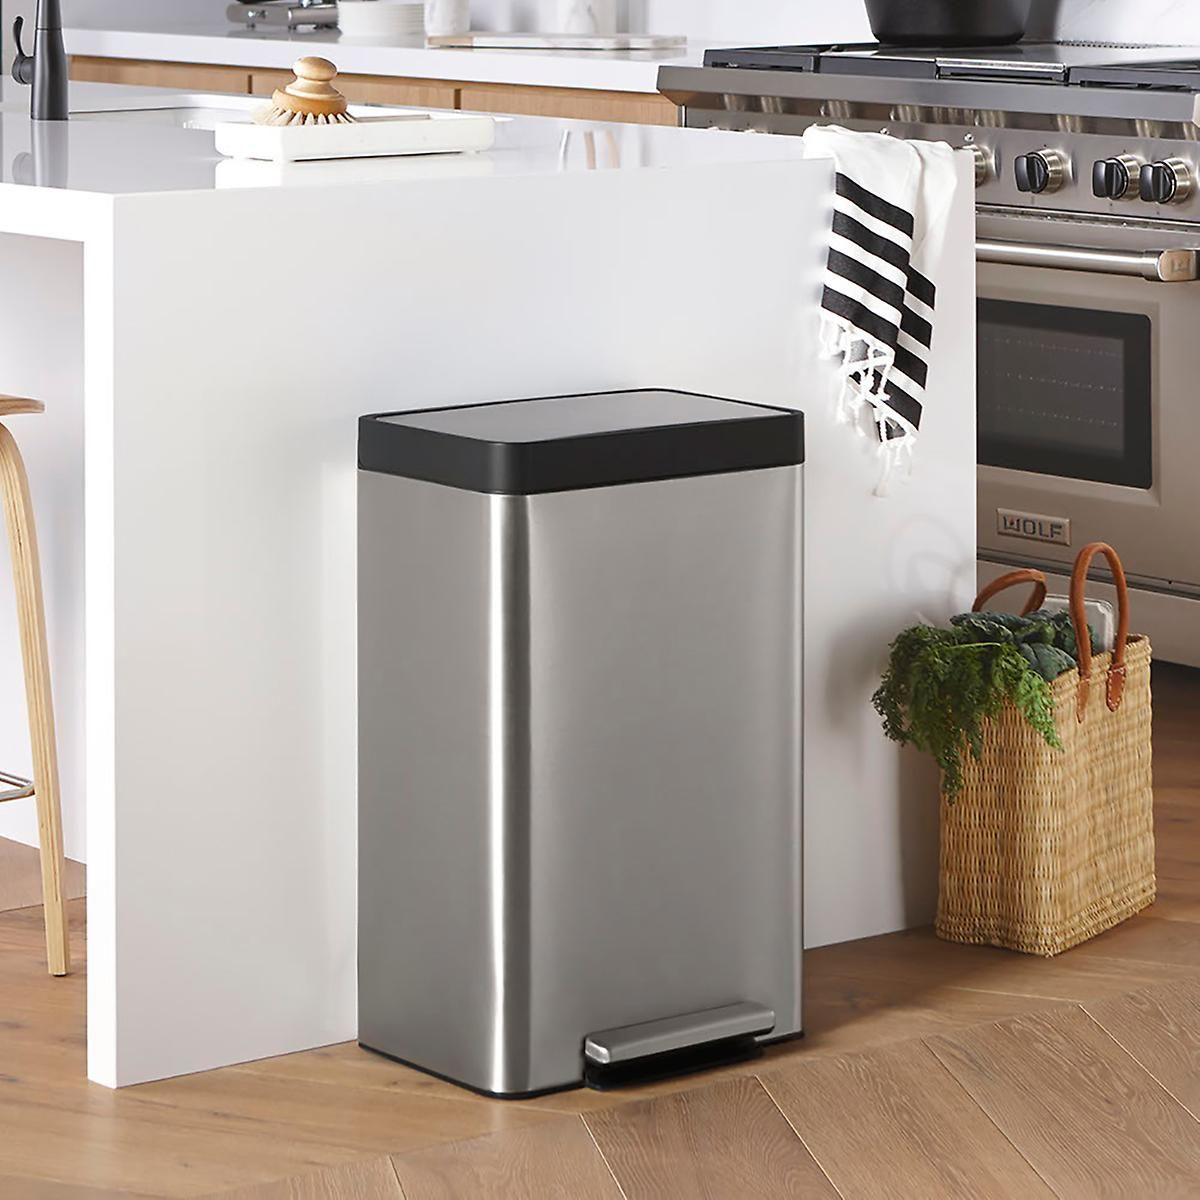 Kohler Stainless Steel 13 Gal Step Trash Can Kitchen